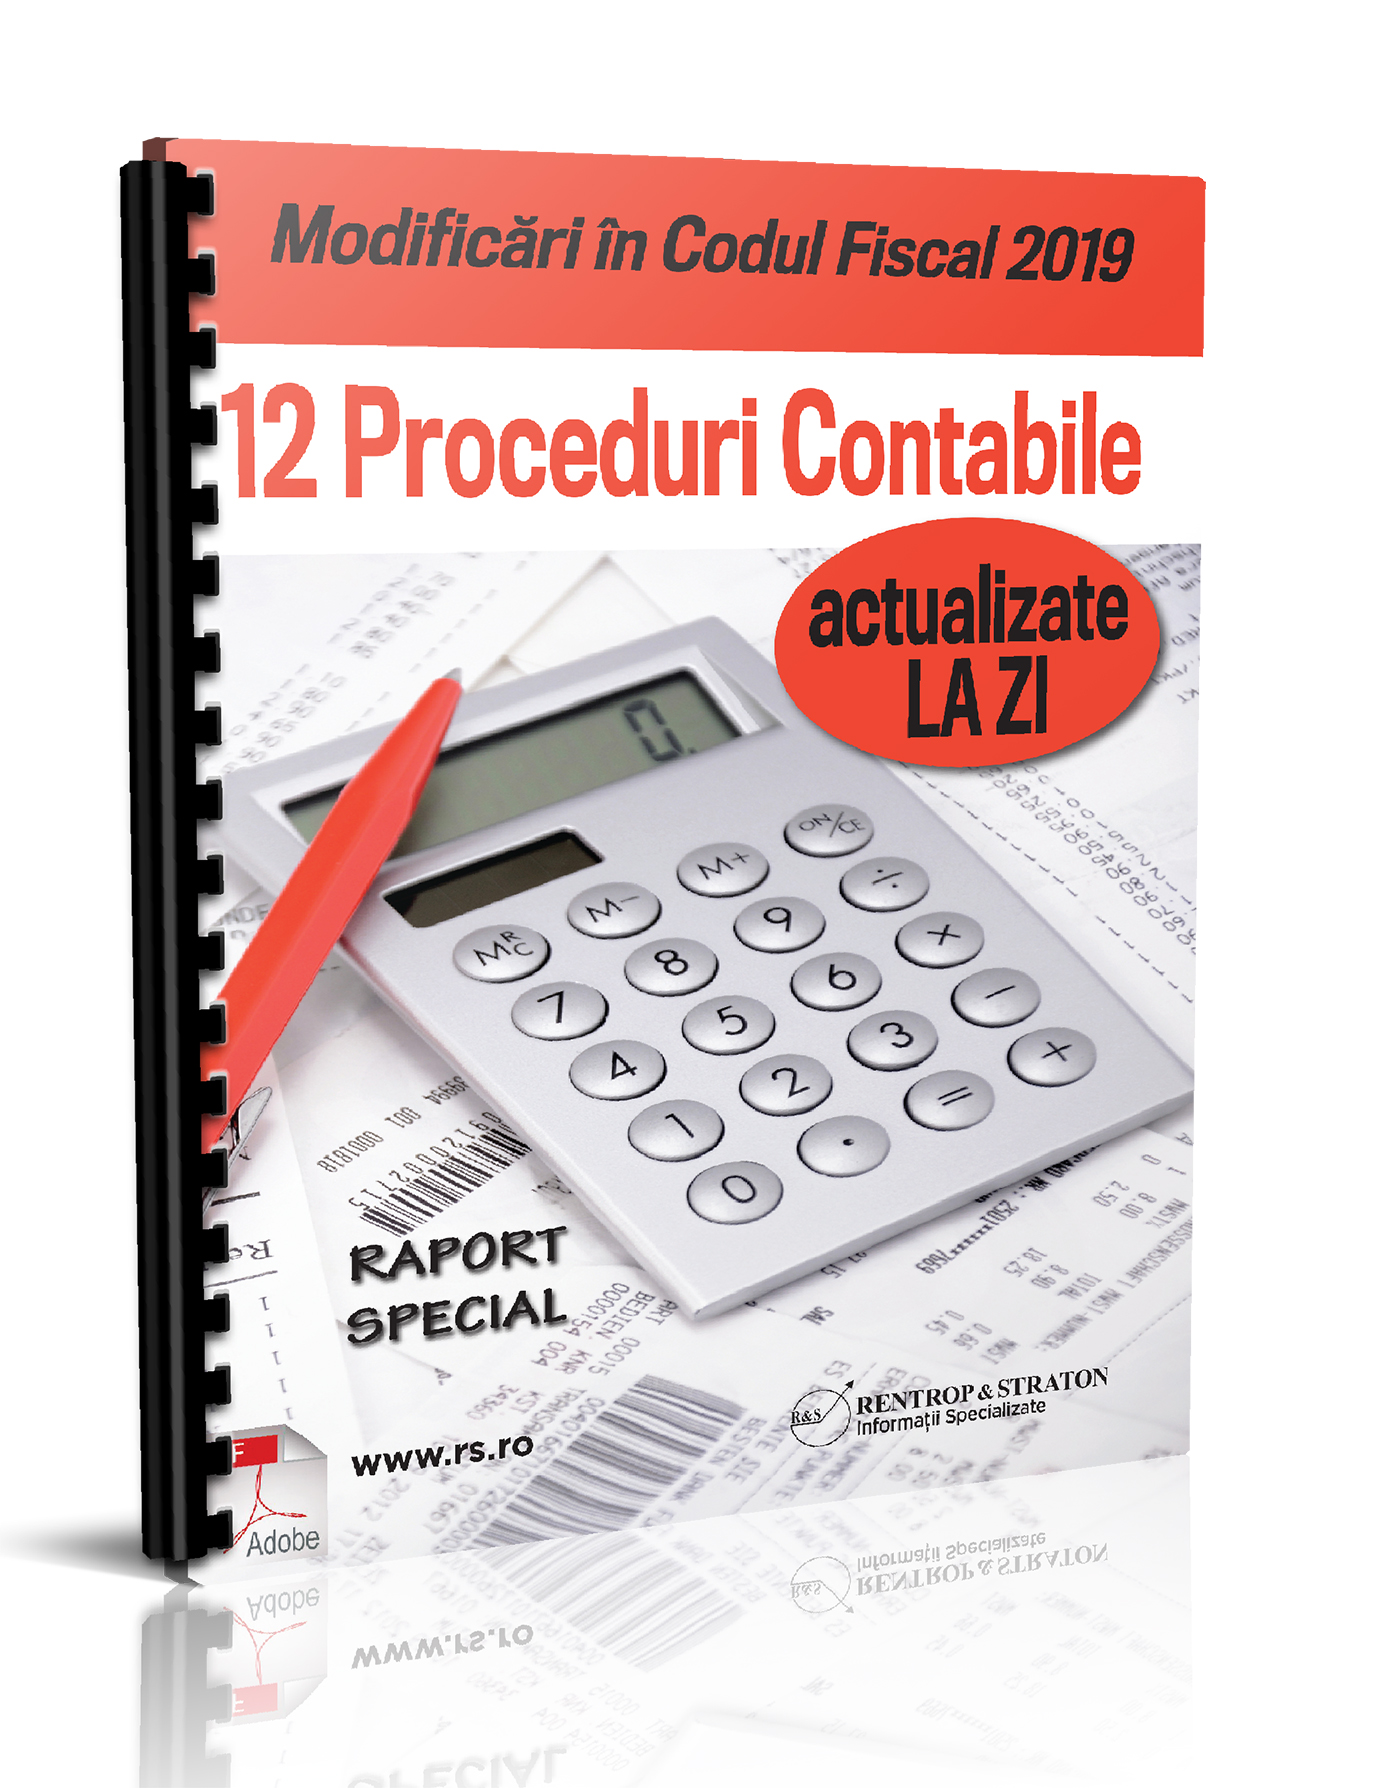 Modificari in Codul Fiscal 2019 - 12 Proceduri Contabile actualizate la zi